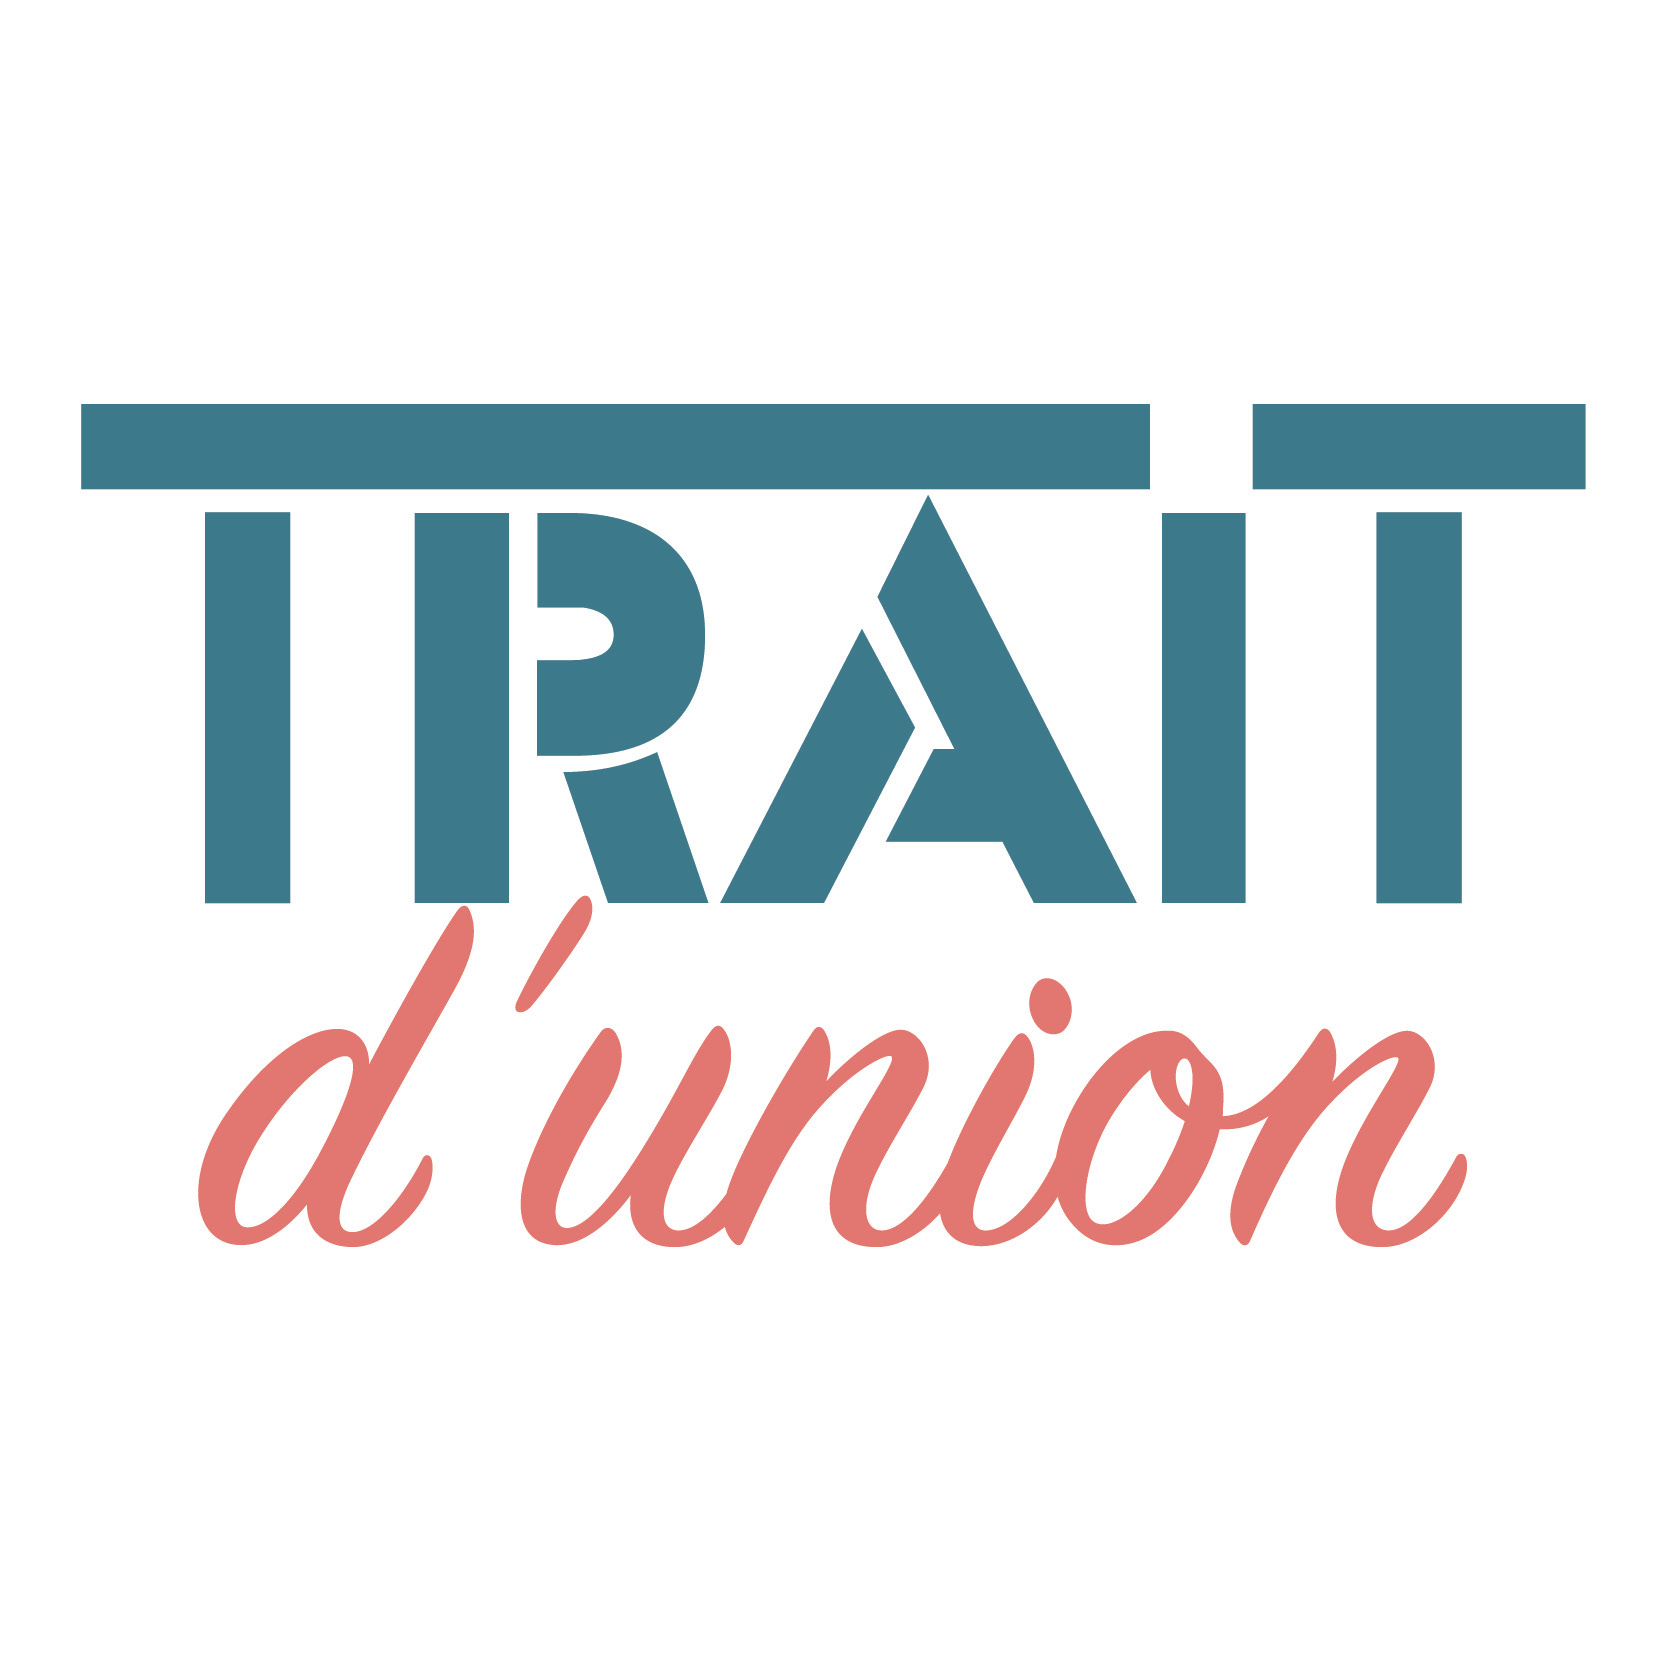 Service de rencontre trait d'union